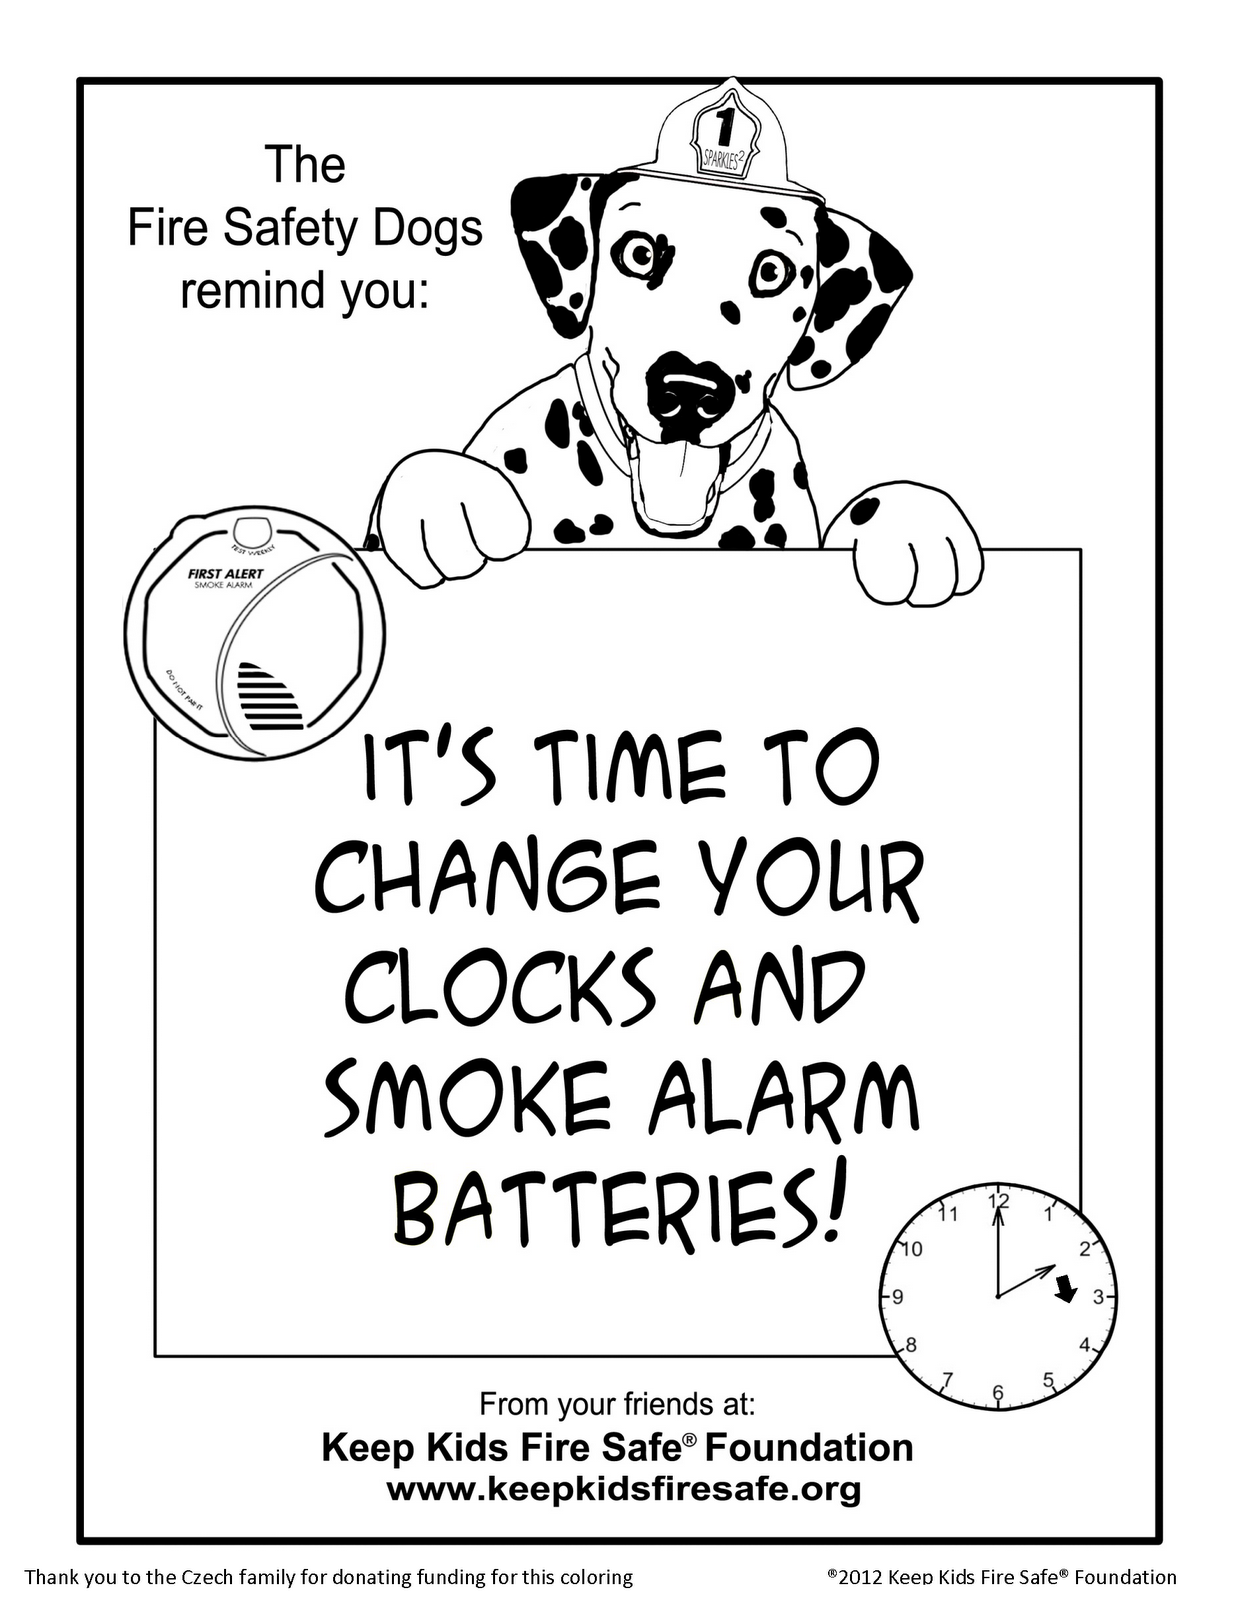 Sparkles the fire safety dog new coloring page it's time to change your clocks and smoke alarm batteries